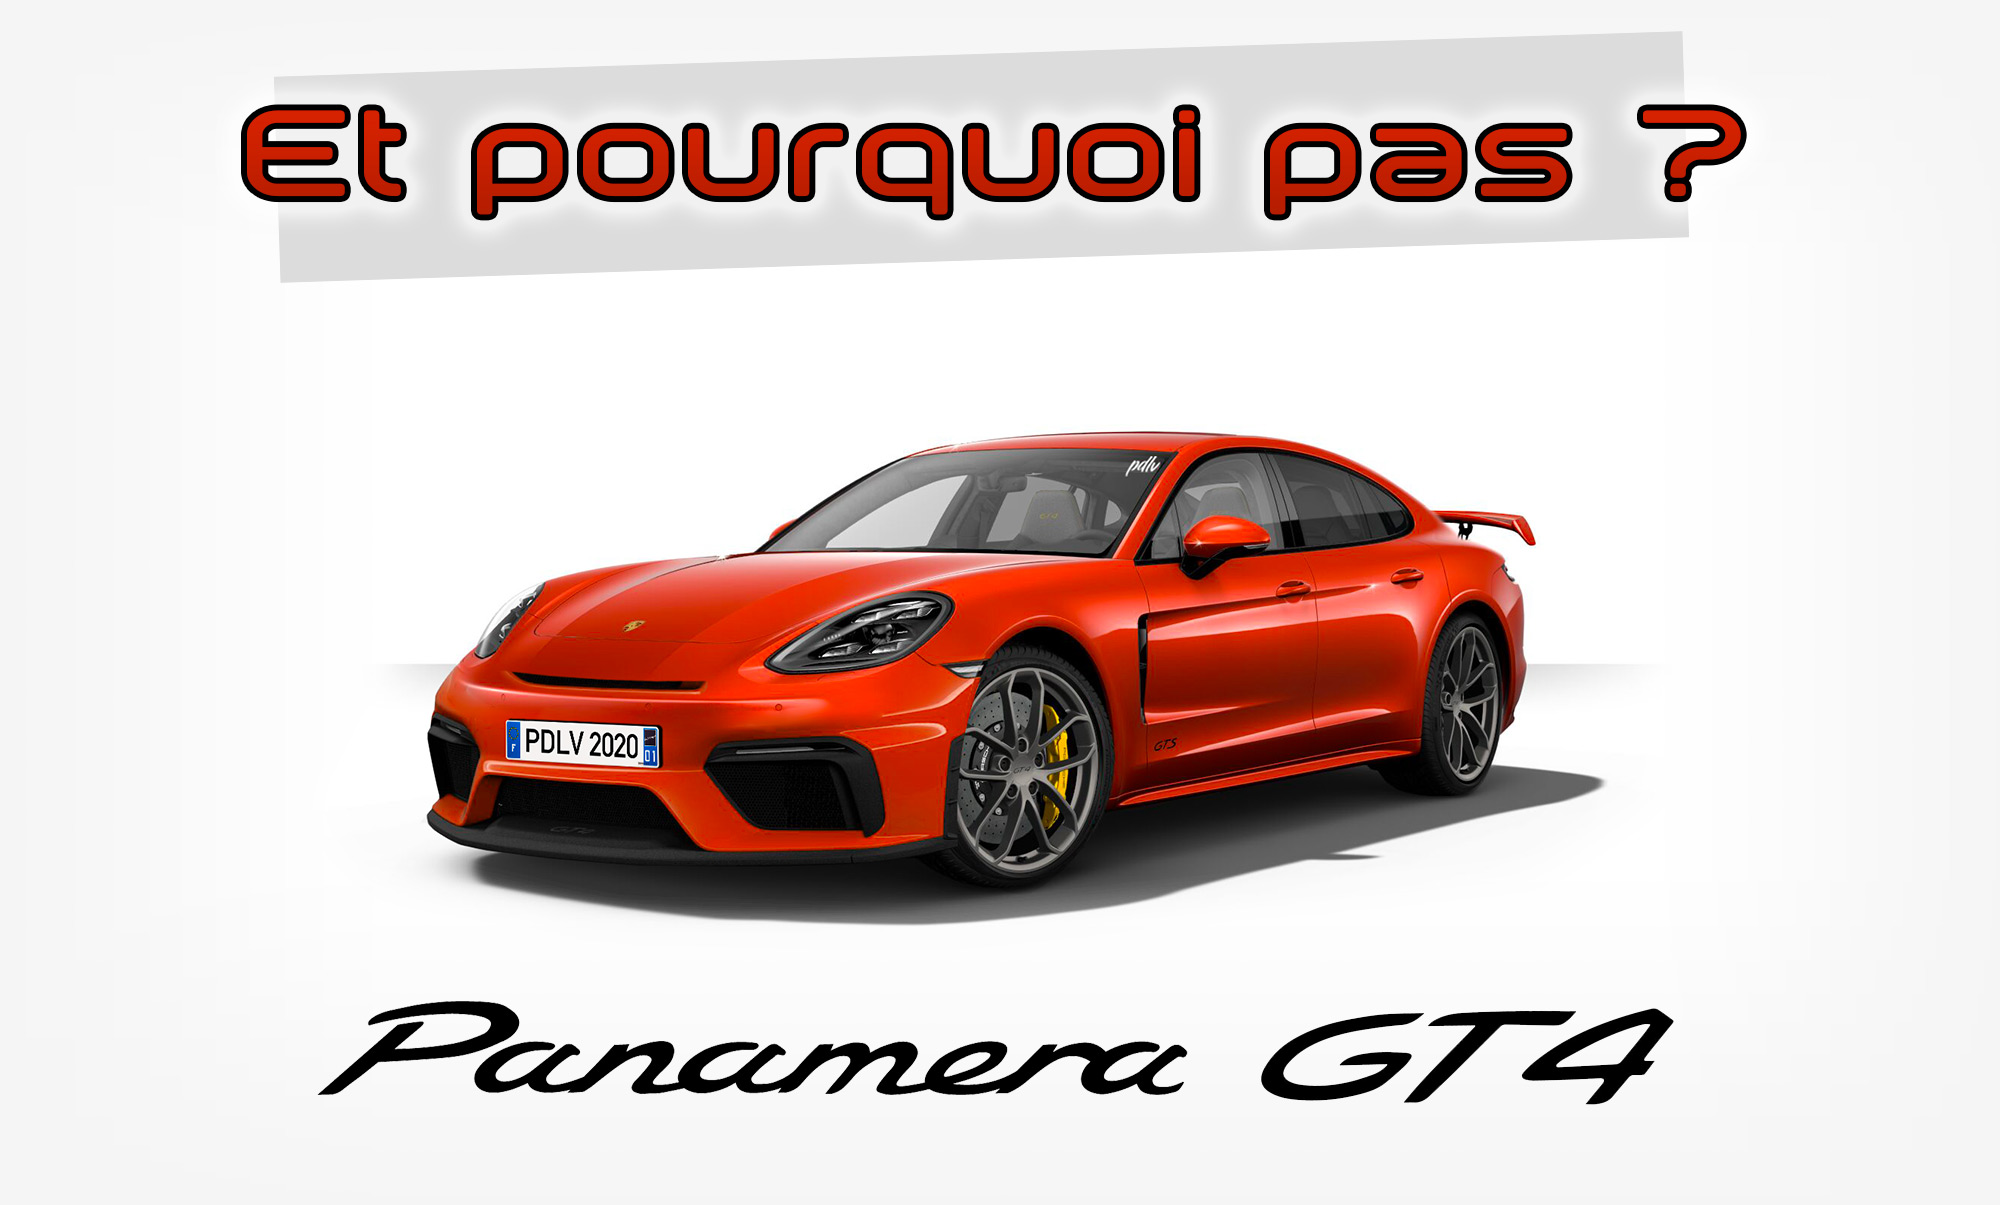 Porsche Panamera GT4 by PDLV